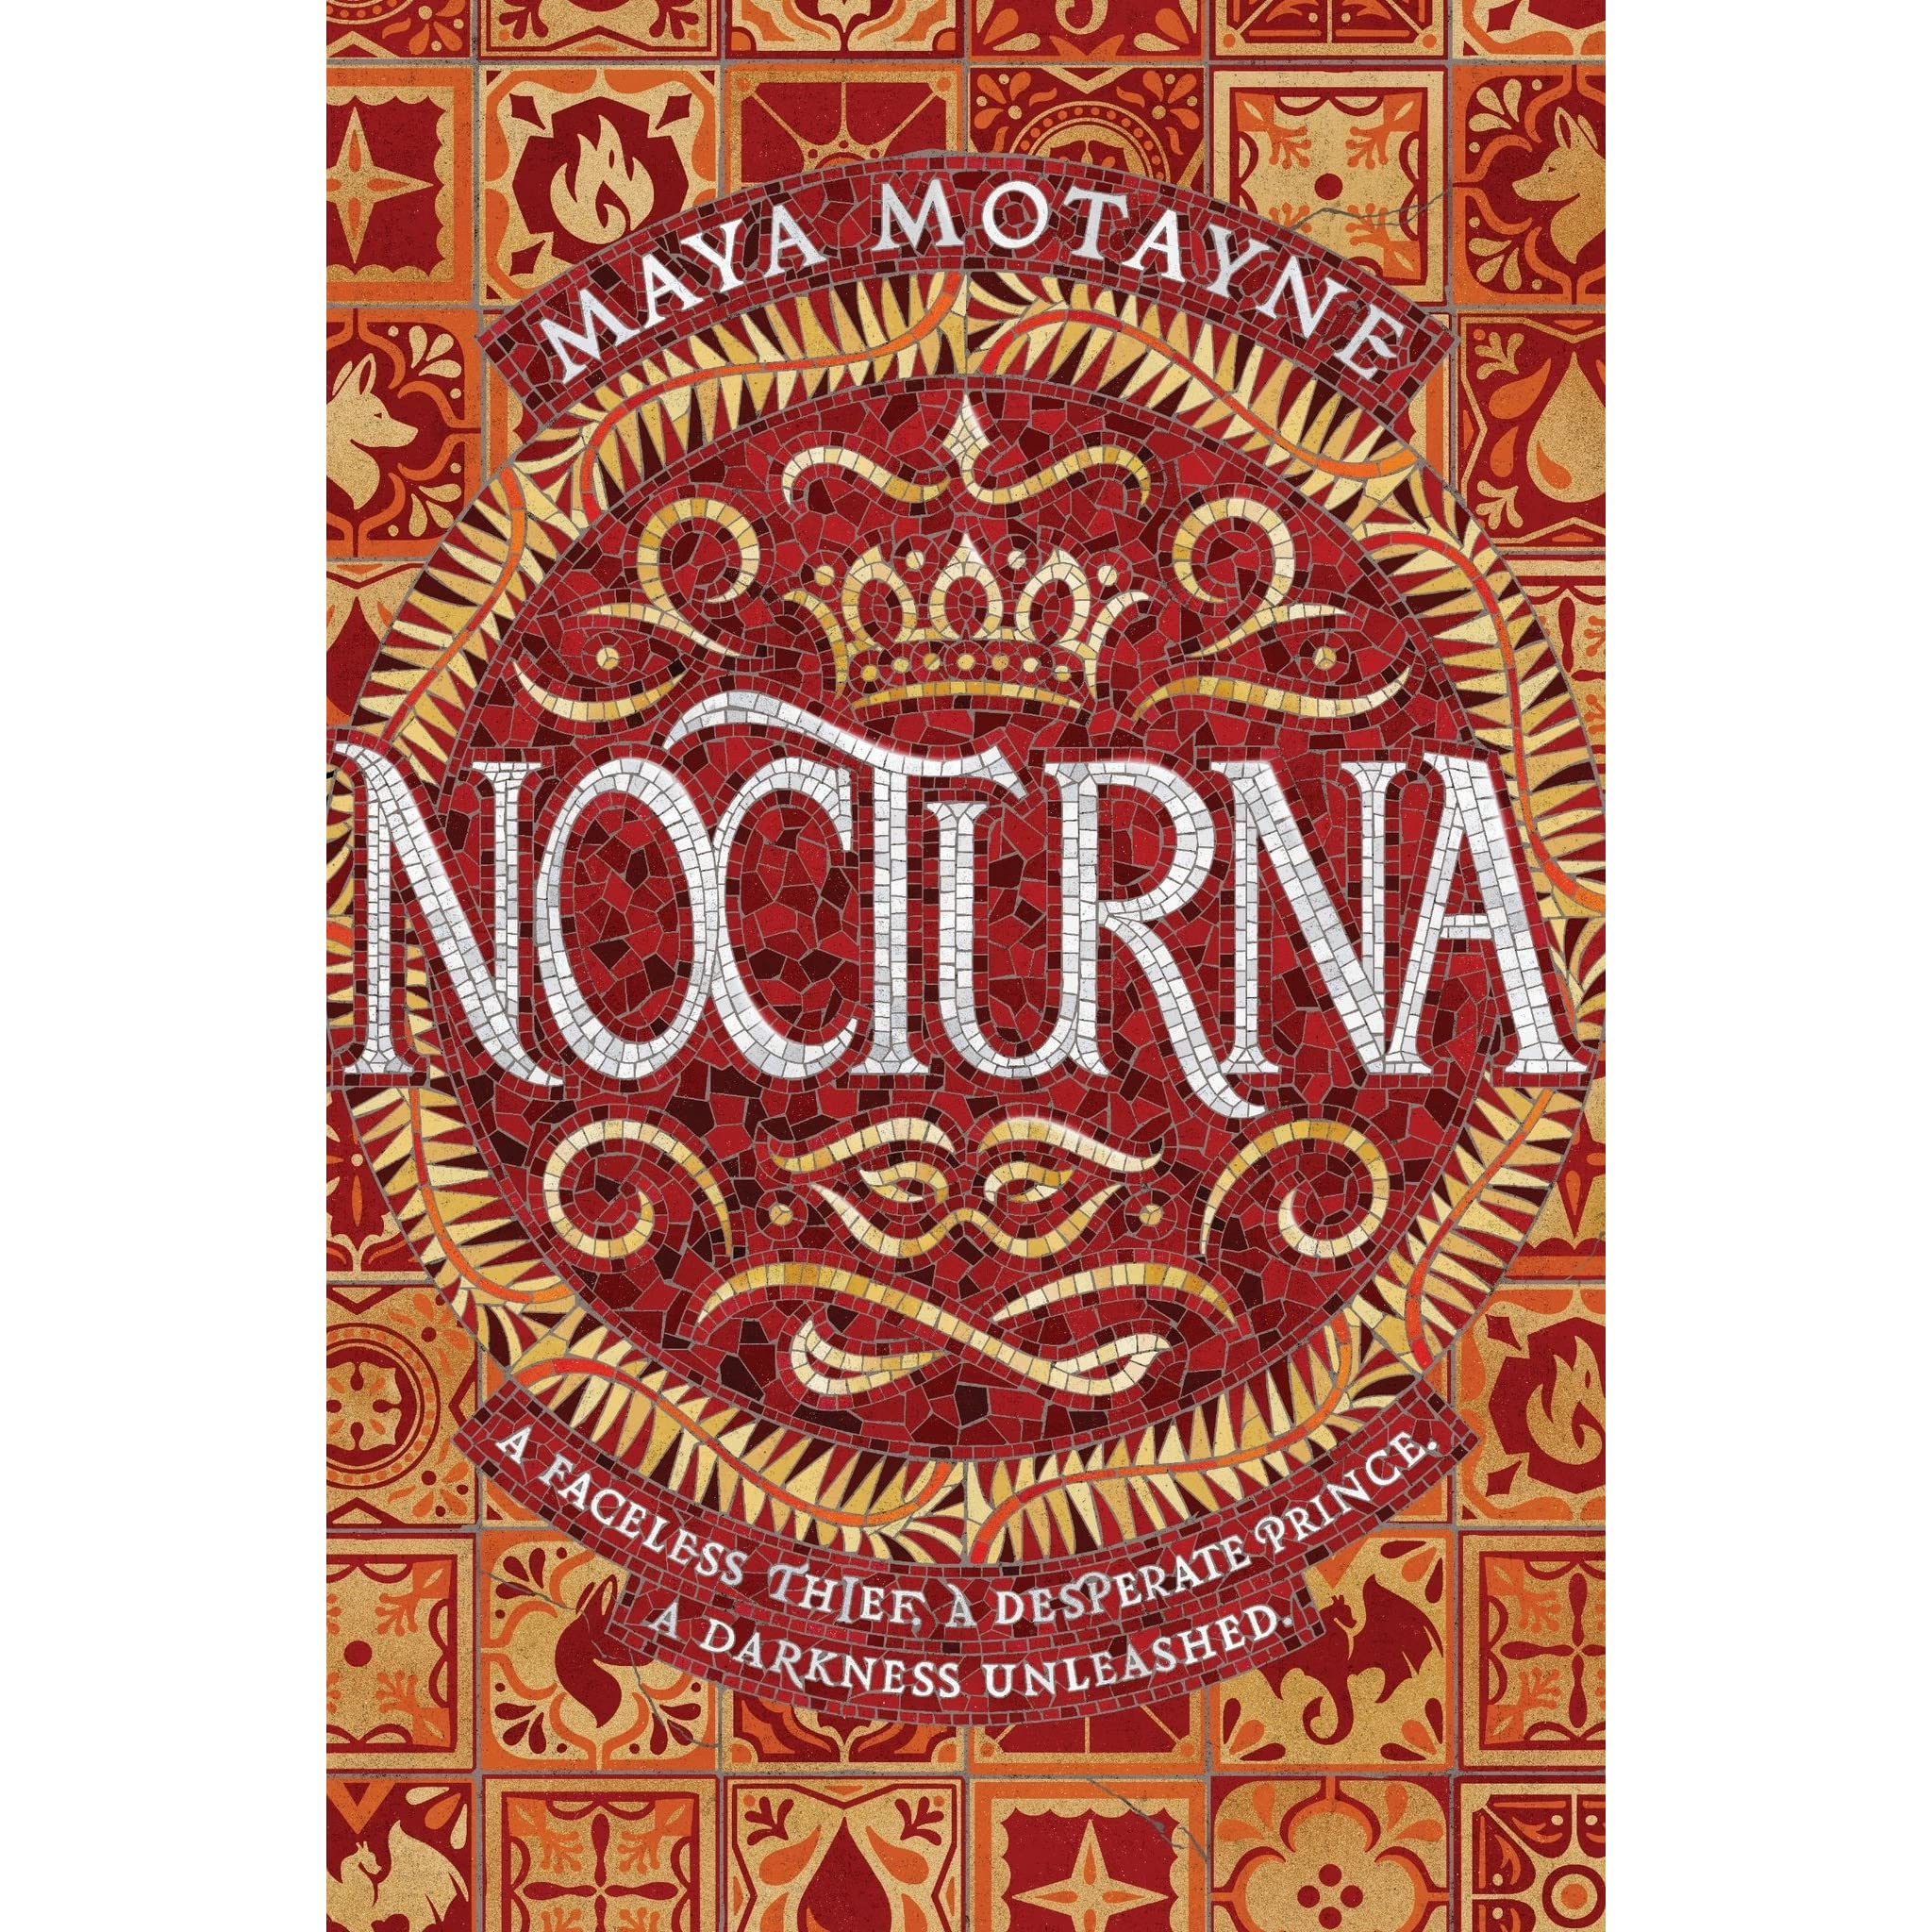 Nocturna (A Forgery of Magic, #1) by Maya Motayne